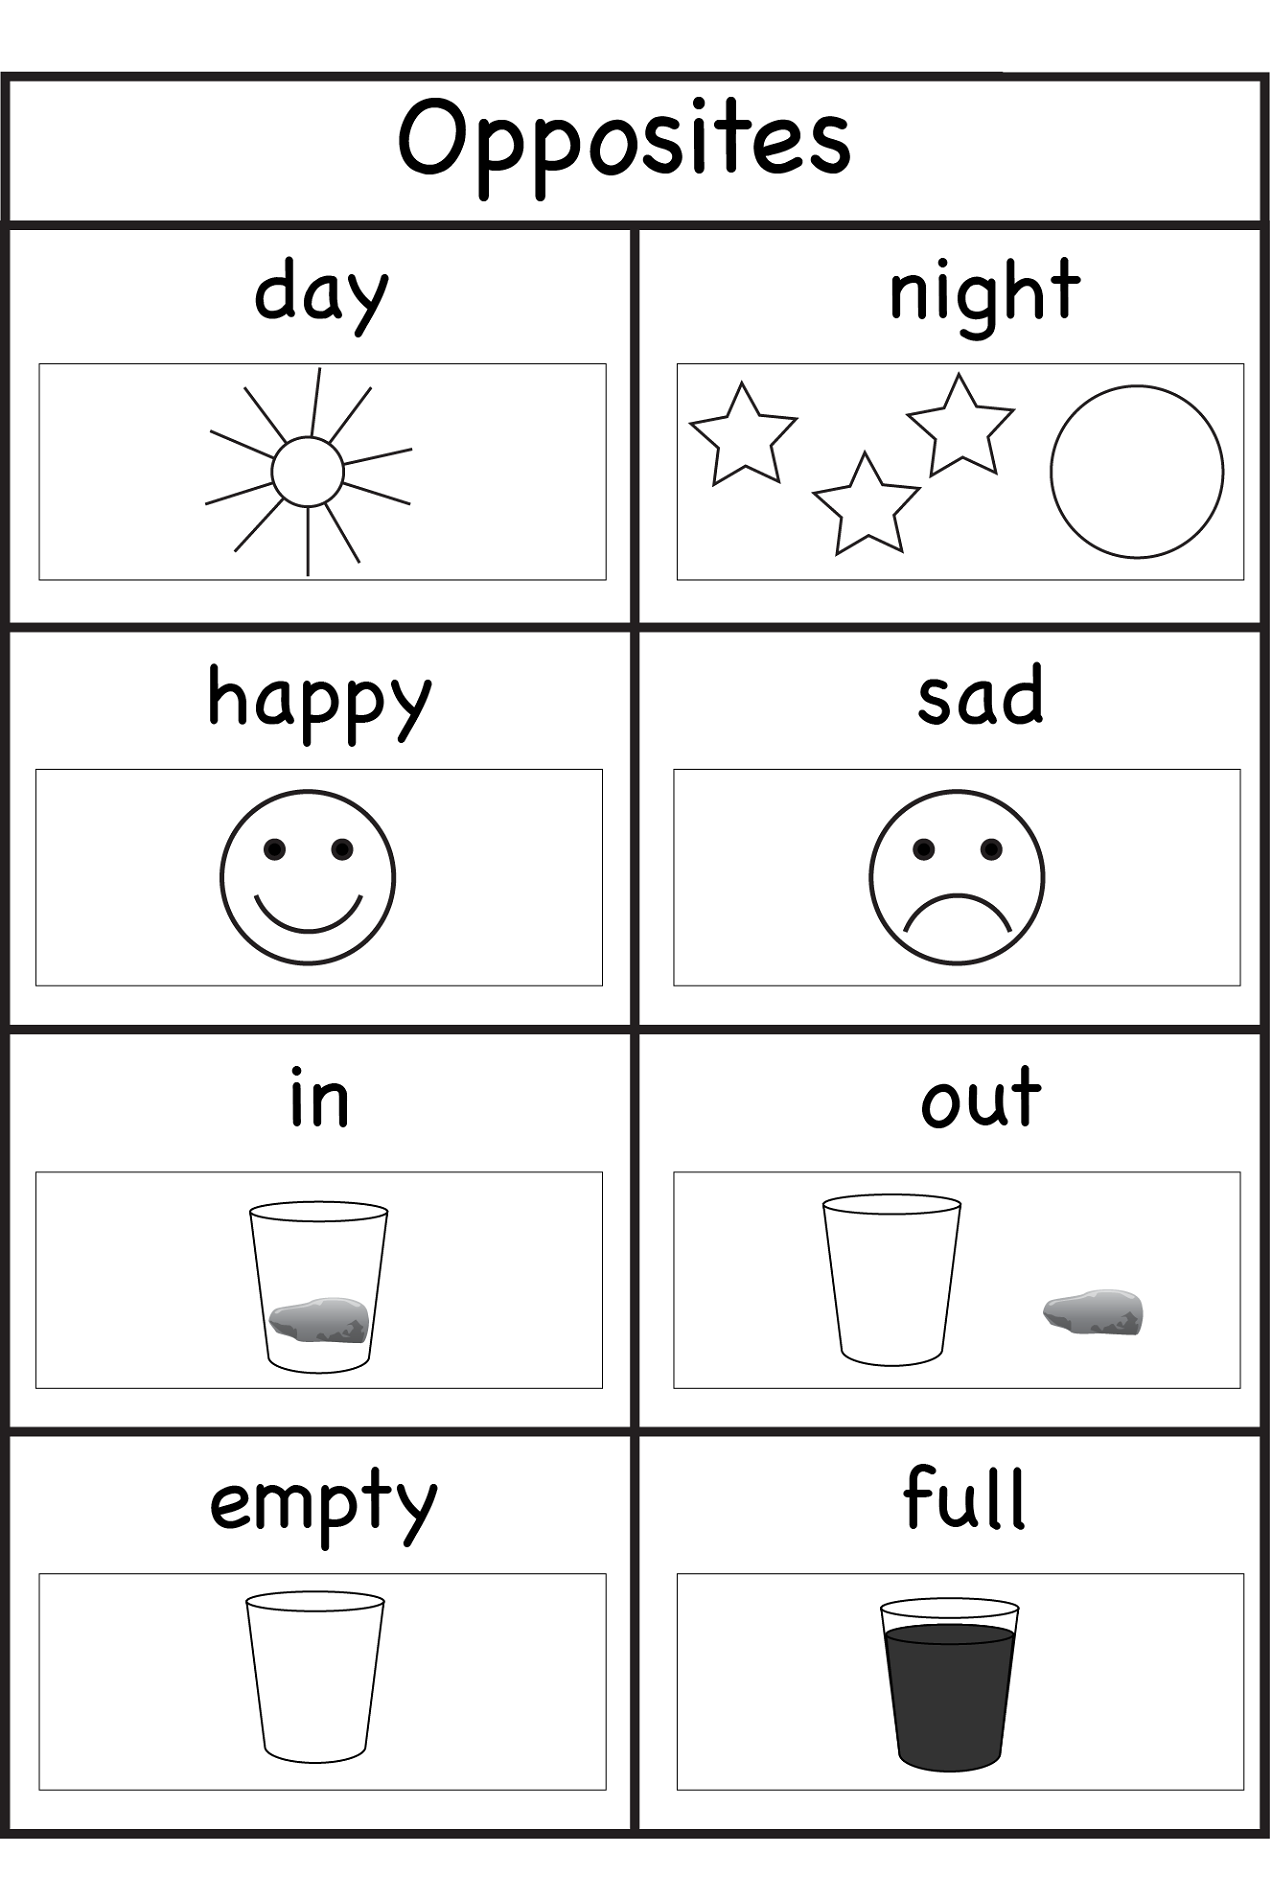 worksheets for 4 year olds opposites